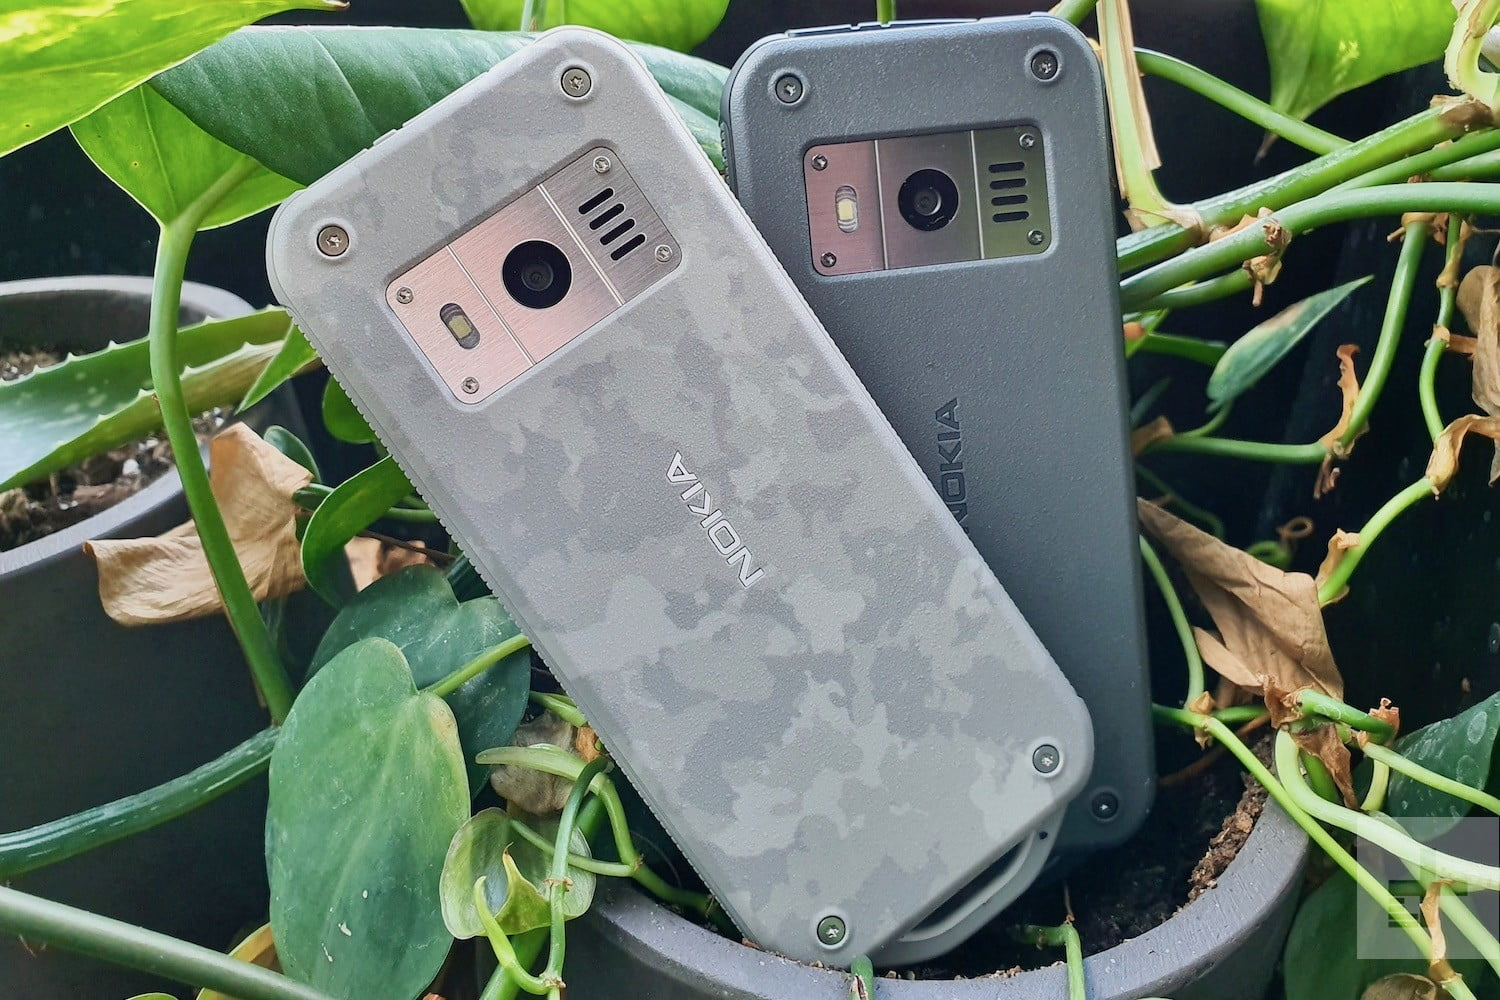 Quirky and Cheap: No Wonder HMD Sells So Many Nokia Feature